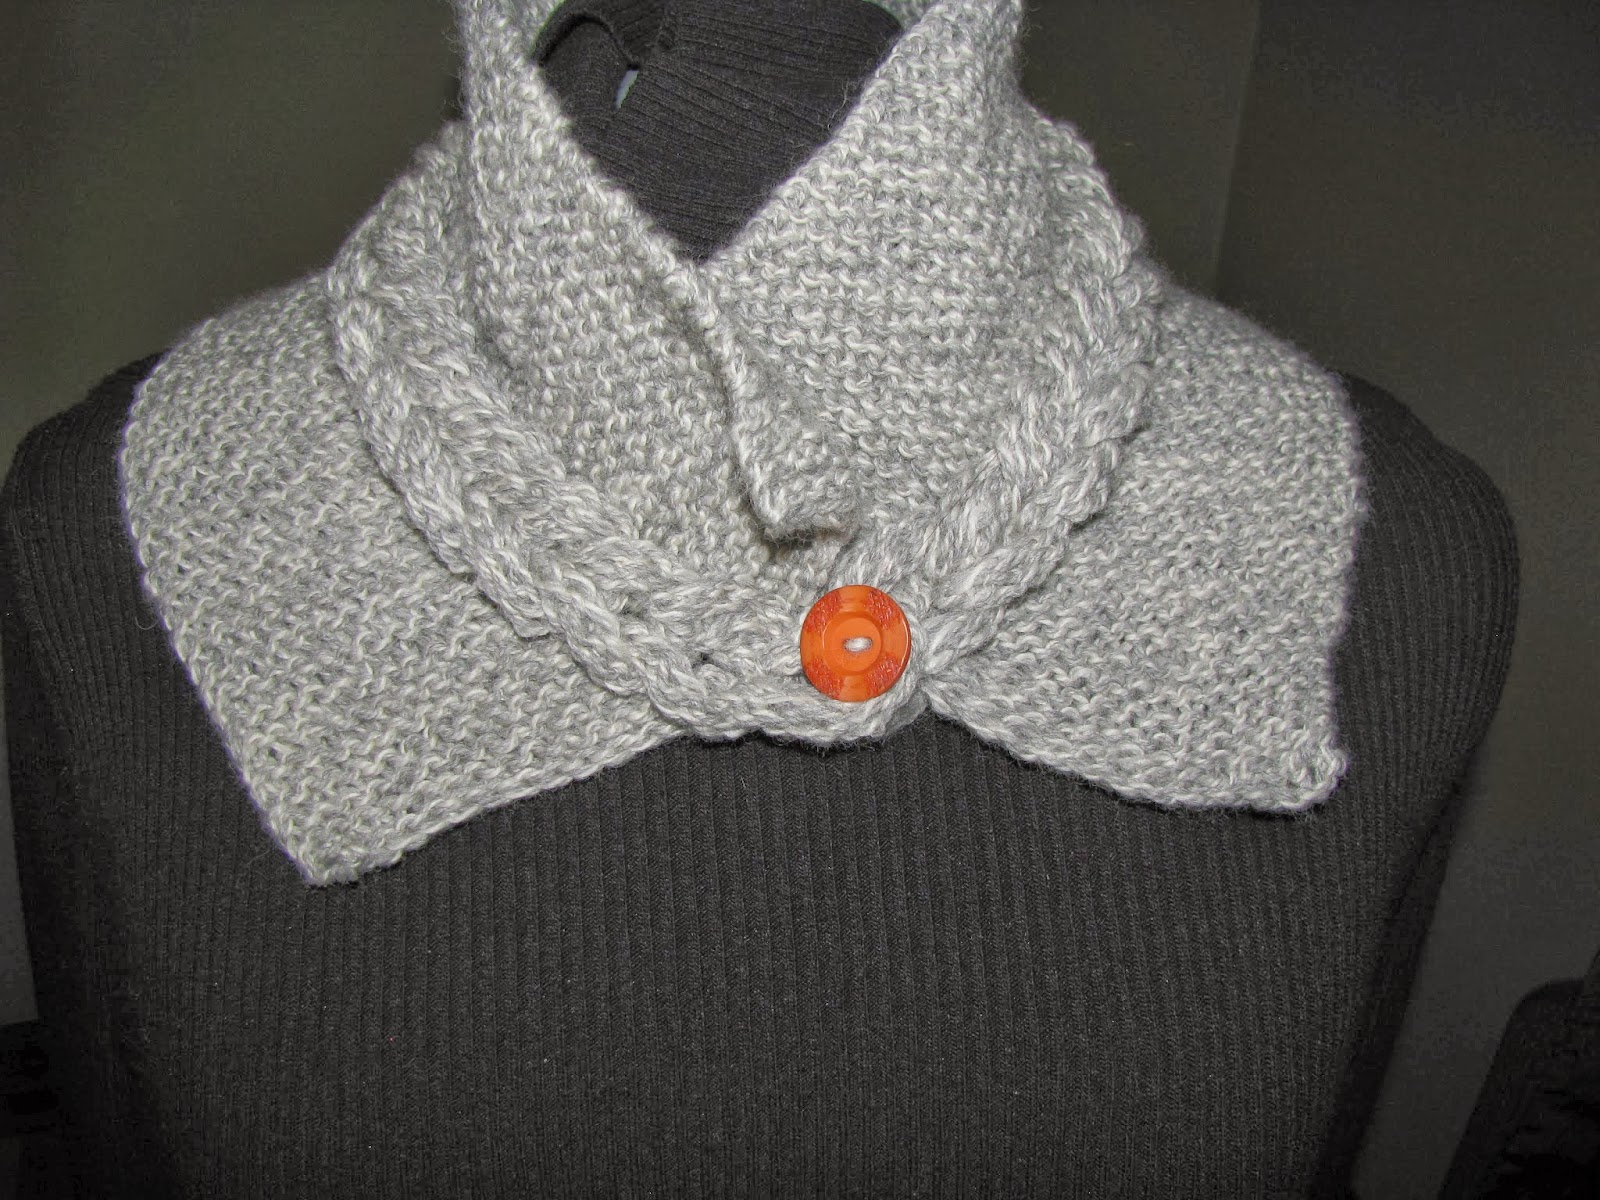 Chris Knits in Niagara: Hand Cabled Collar